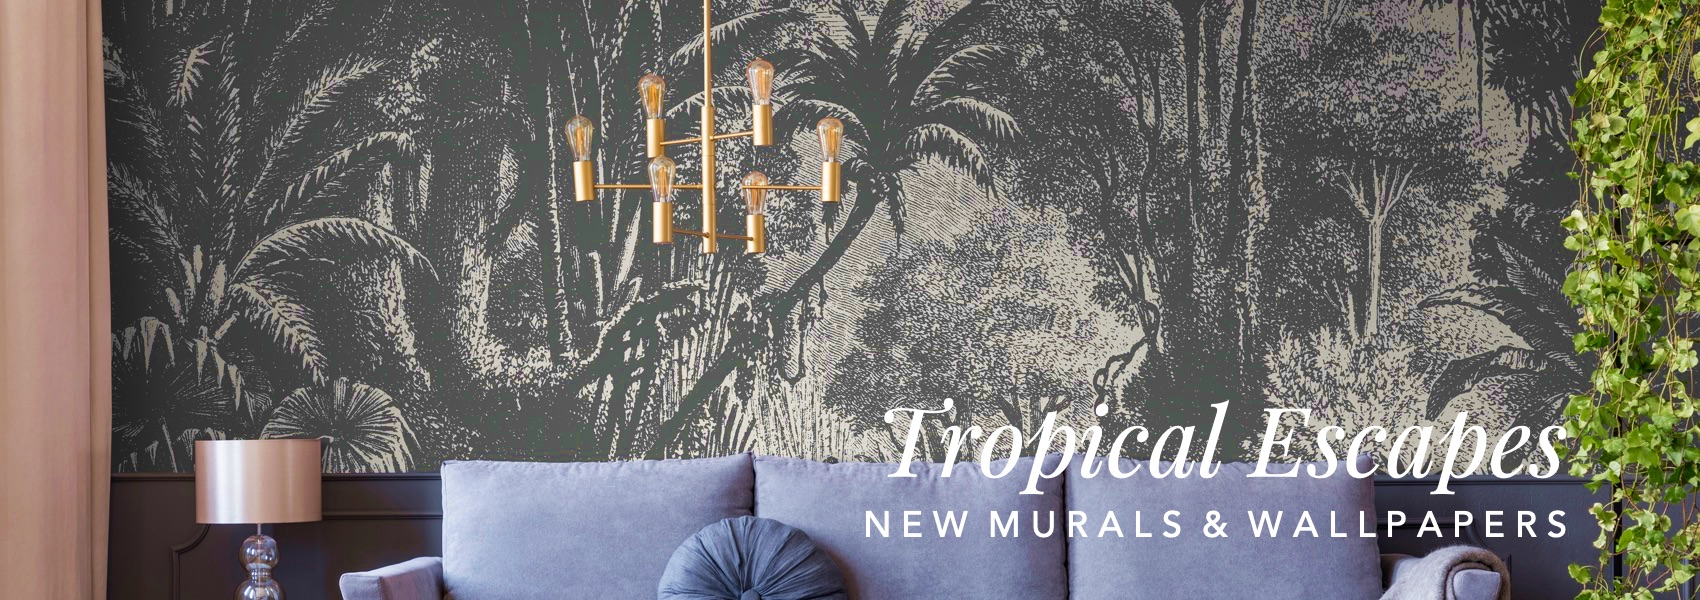 Tropical Escapes.  New Murals and Wallpapers.